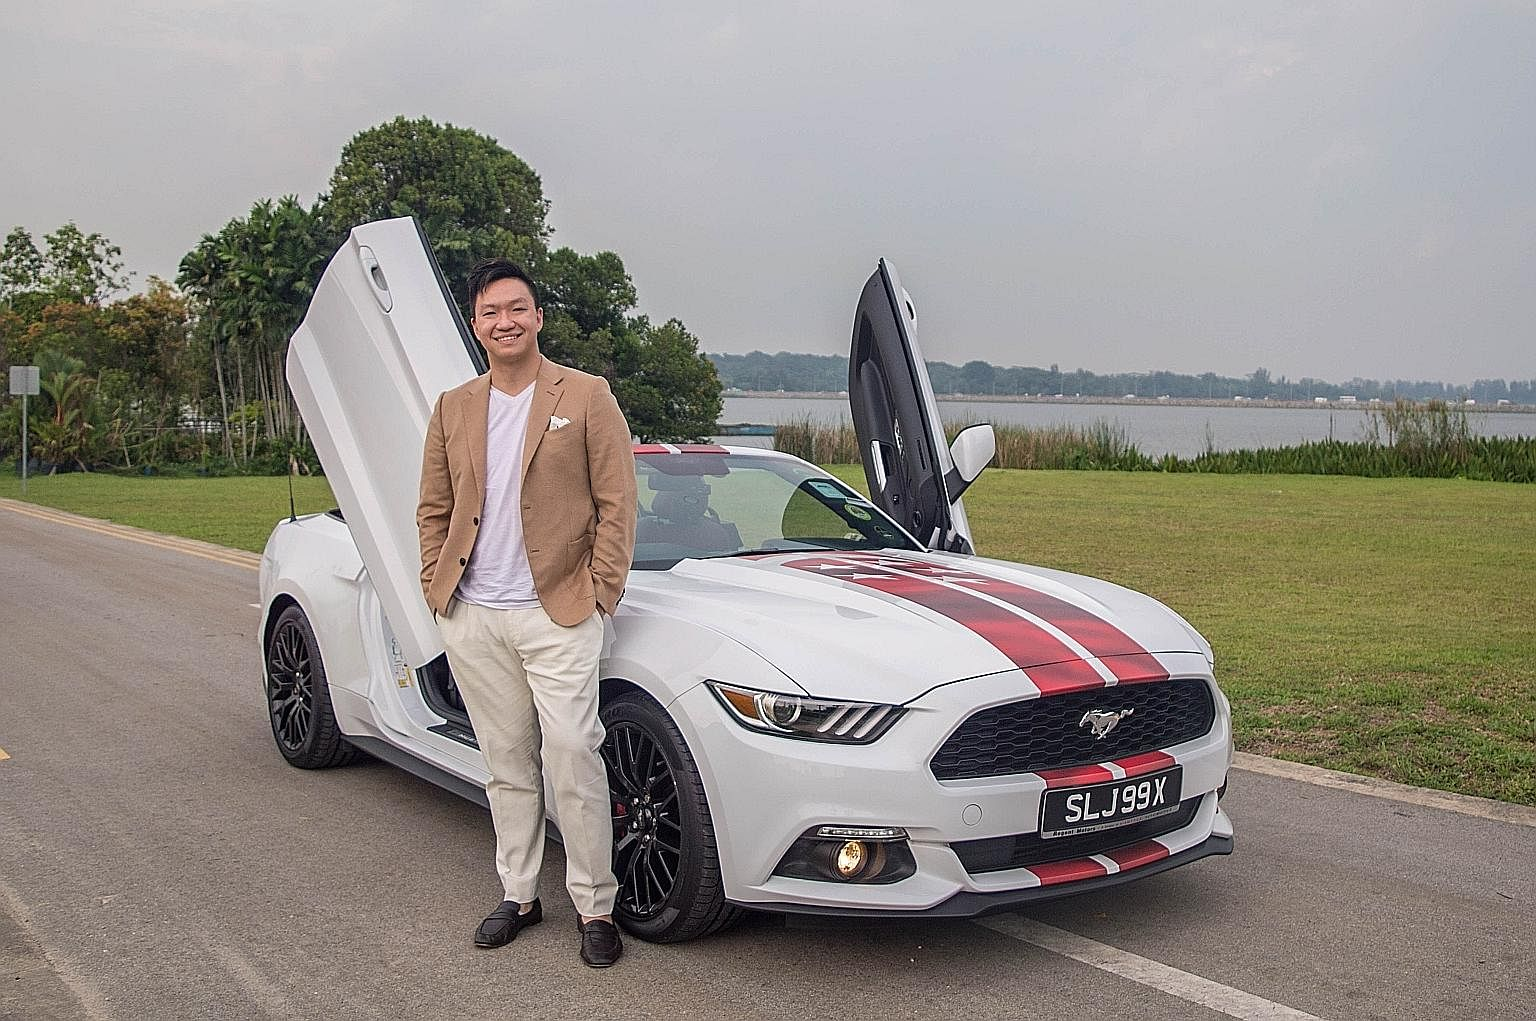 Me And My Car Modified Ford Mustang Convertible An American Beauty Life News Top Stories The Straits Times